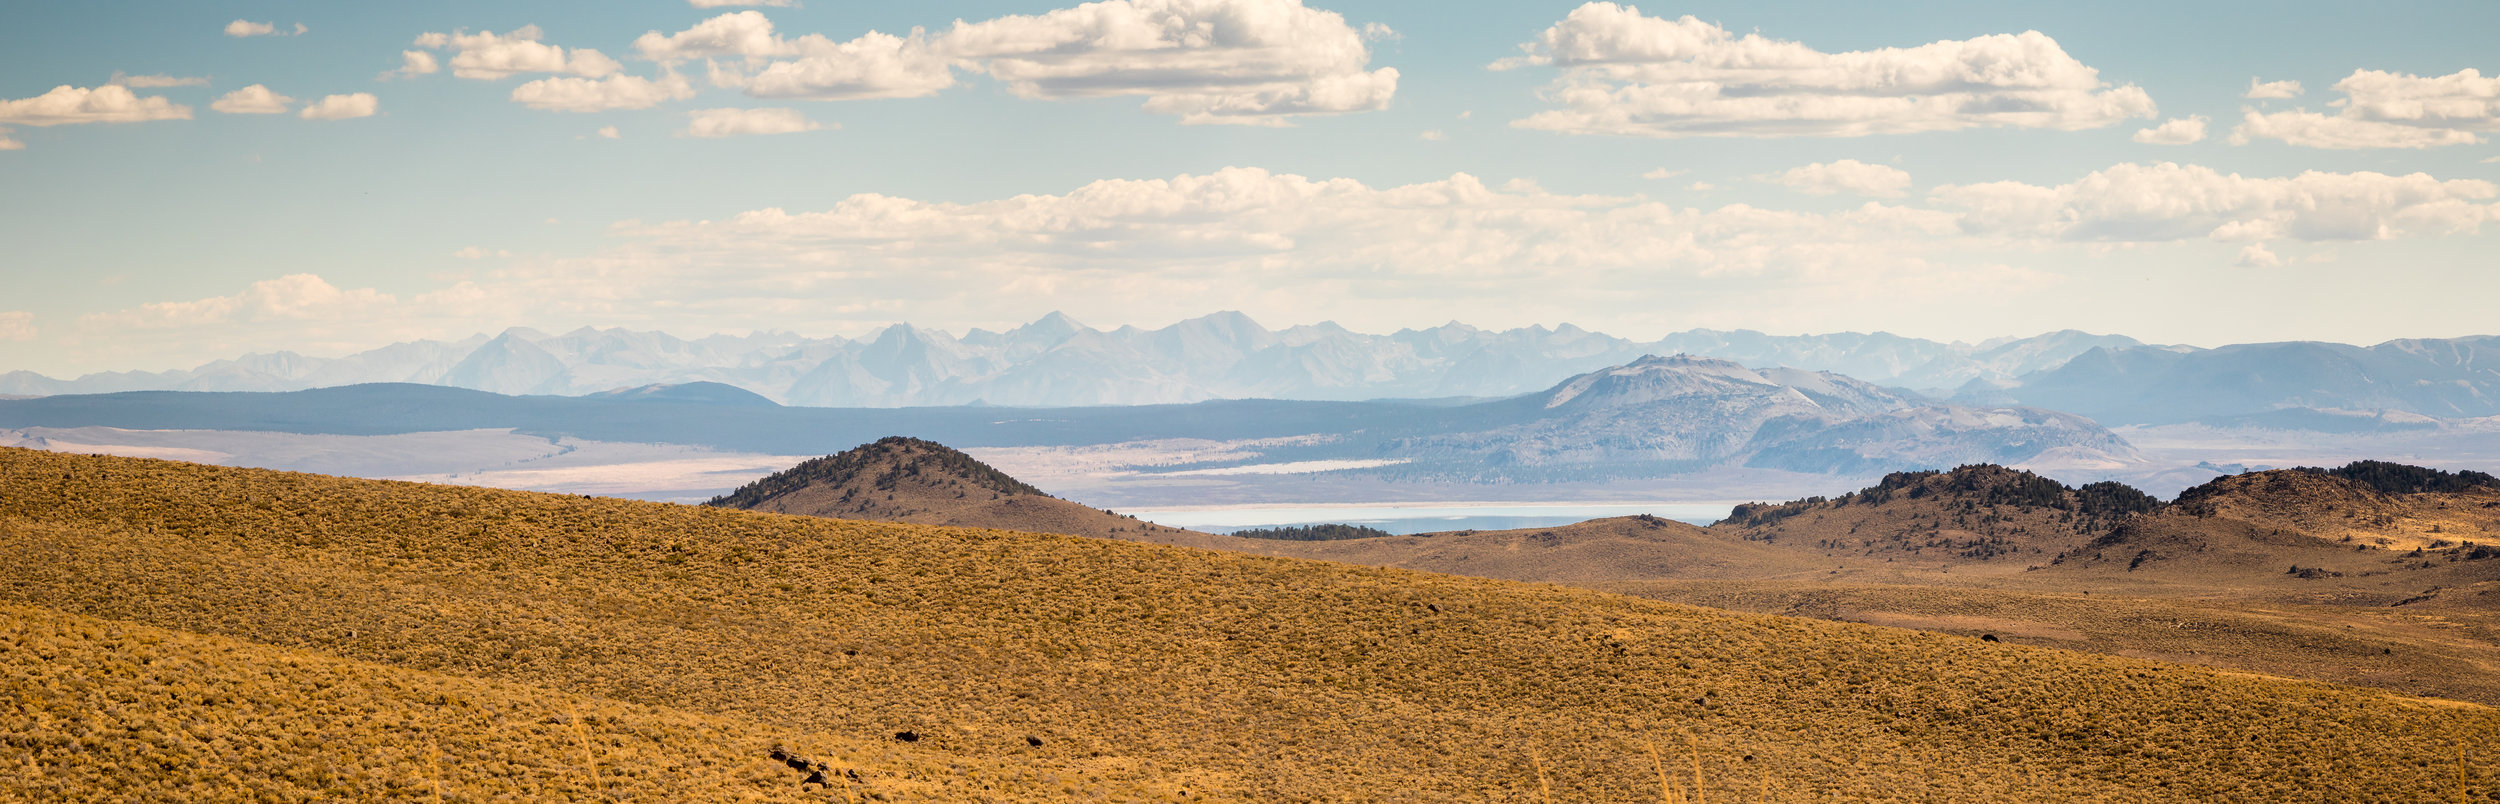 Mono Lake, Owen's Valley and the High Sierras, including Mt. Whitney. From Bodie Road looking south, Bodie, CA.